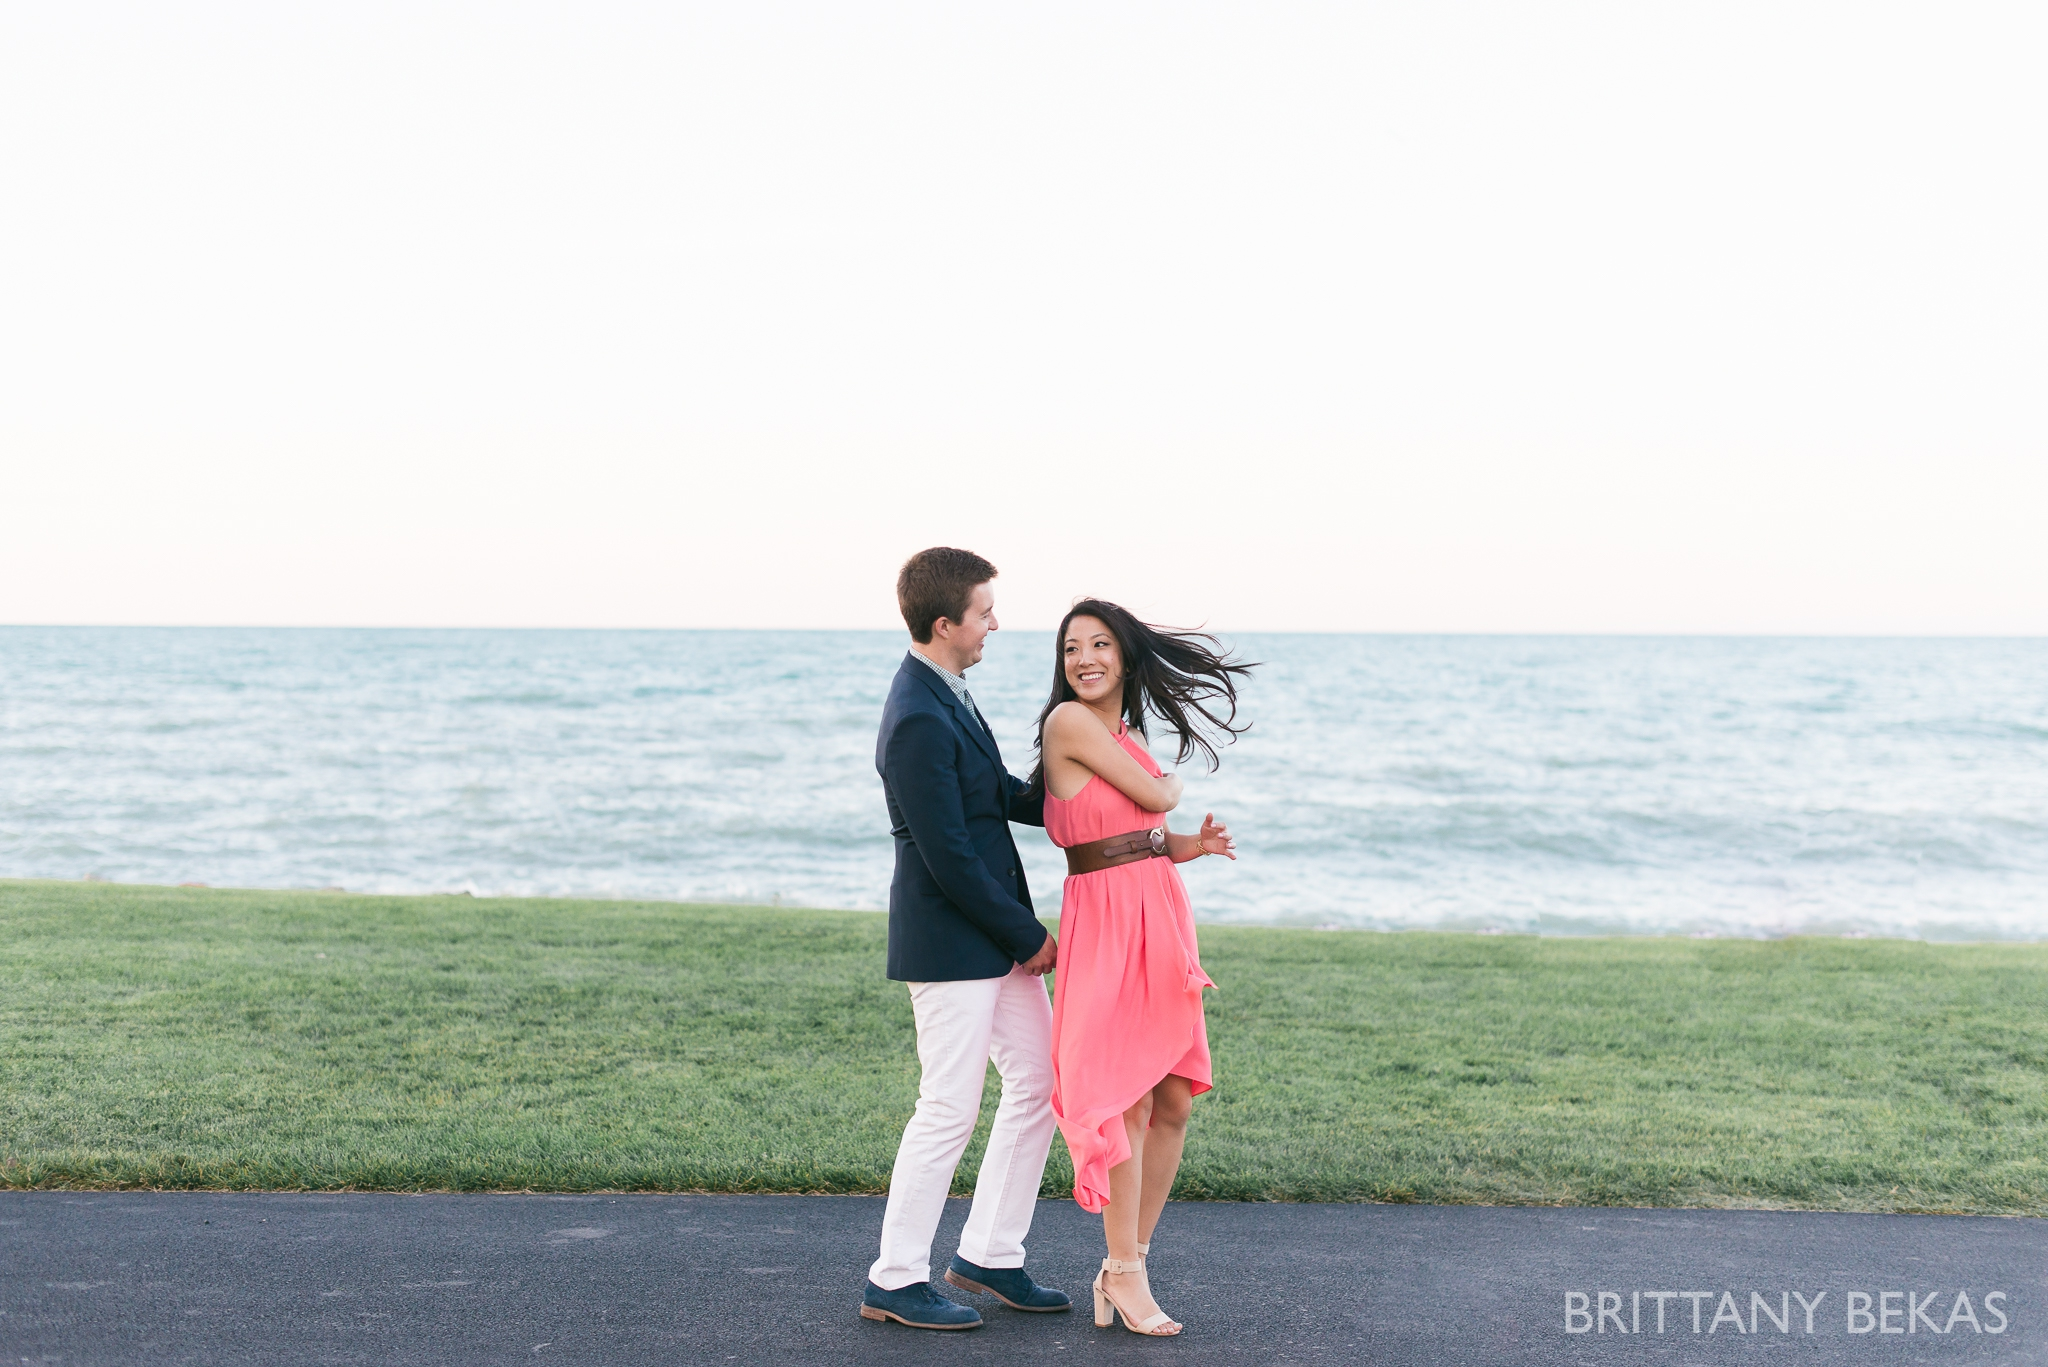 Northwestern Engagement Photos - Brittany Bekas Photography_0010